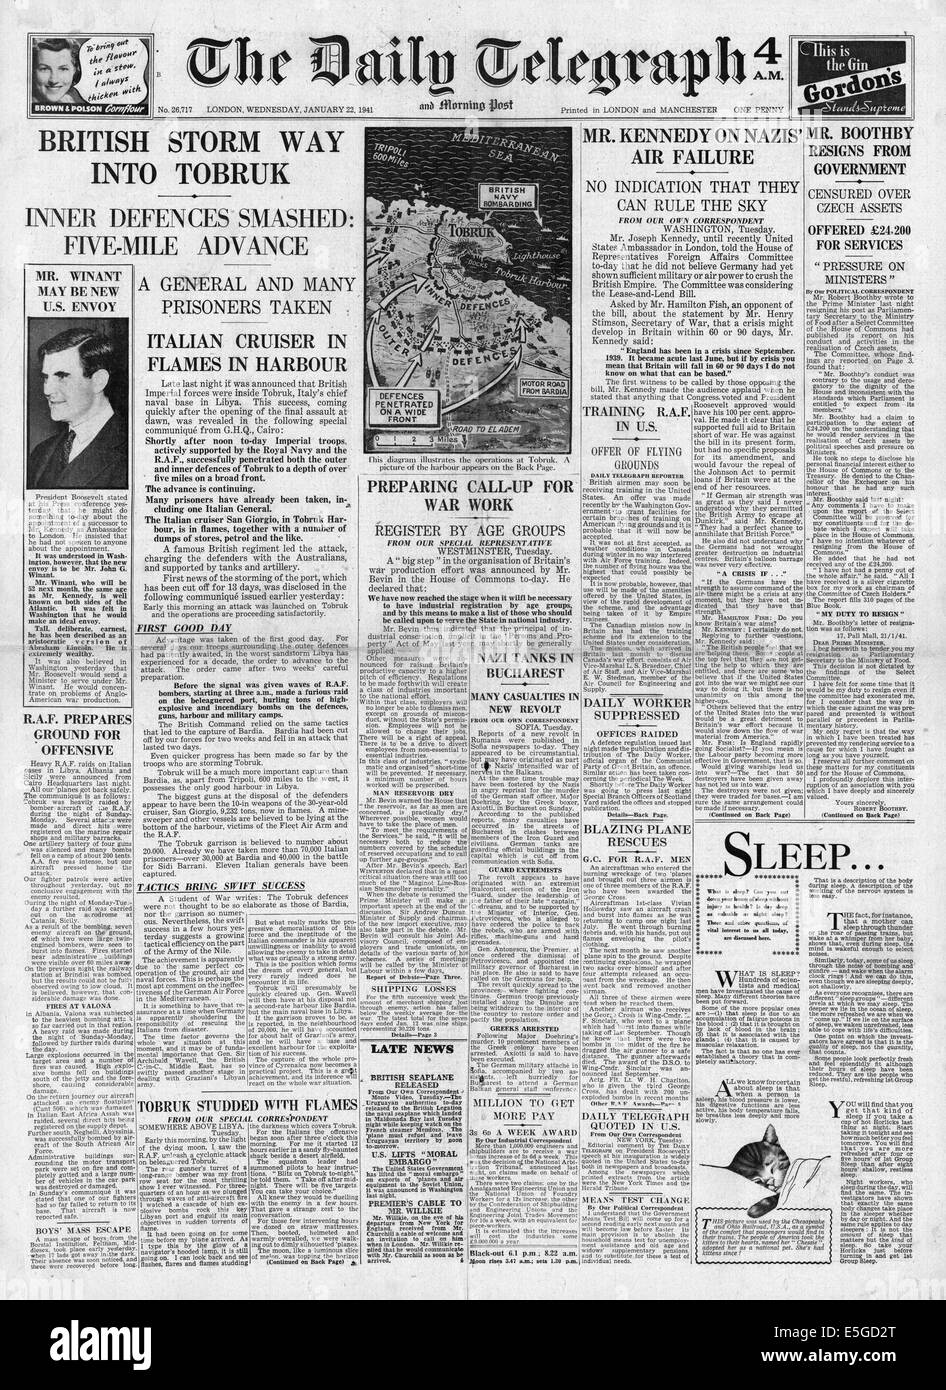 1941 Daily Telegraph reporting front page British Army enter Tobruk - Stock Image